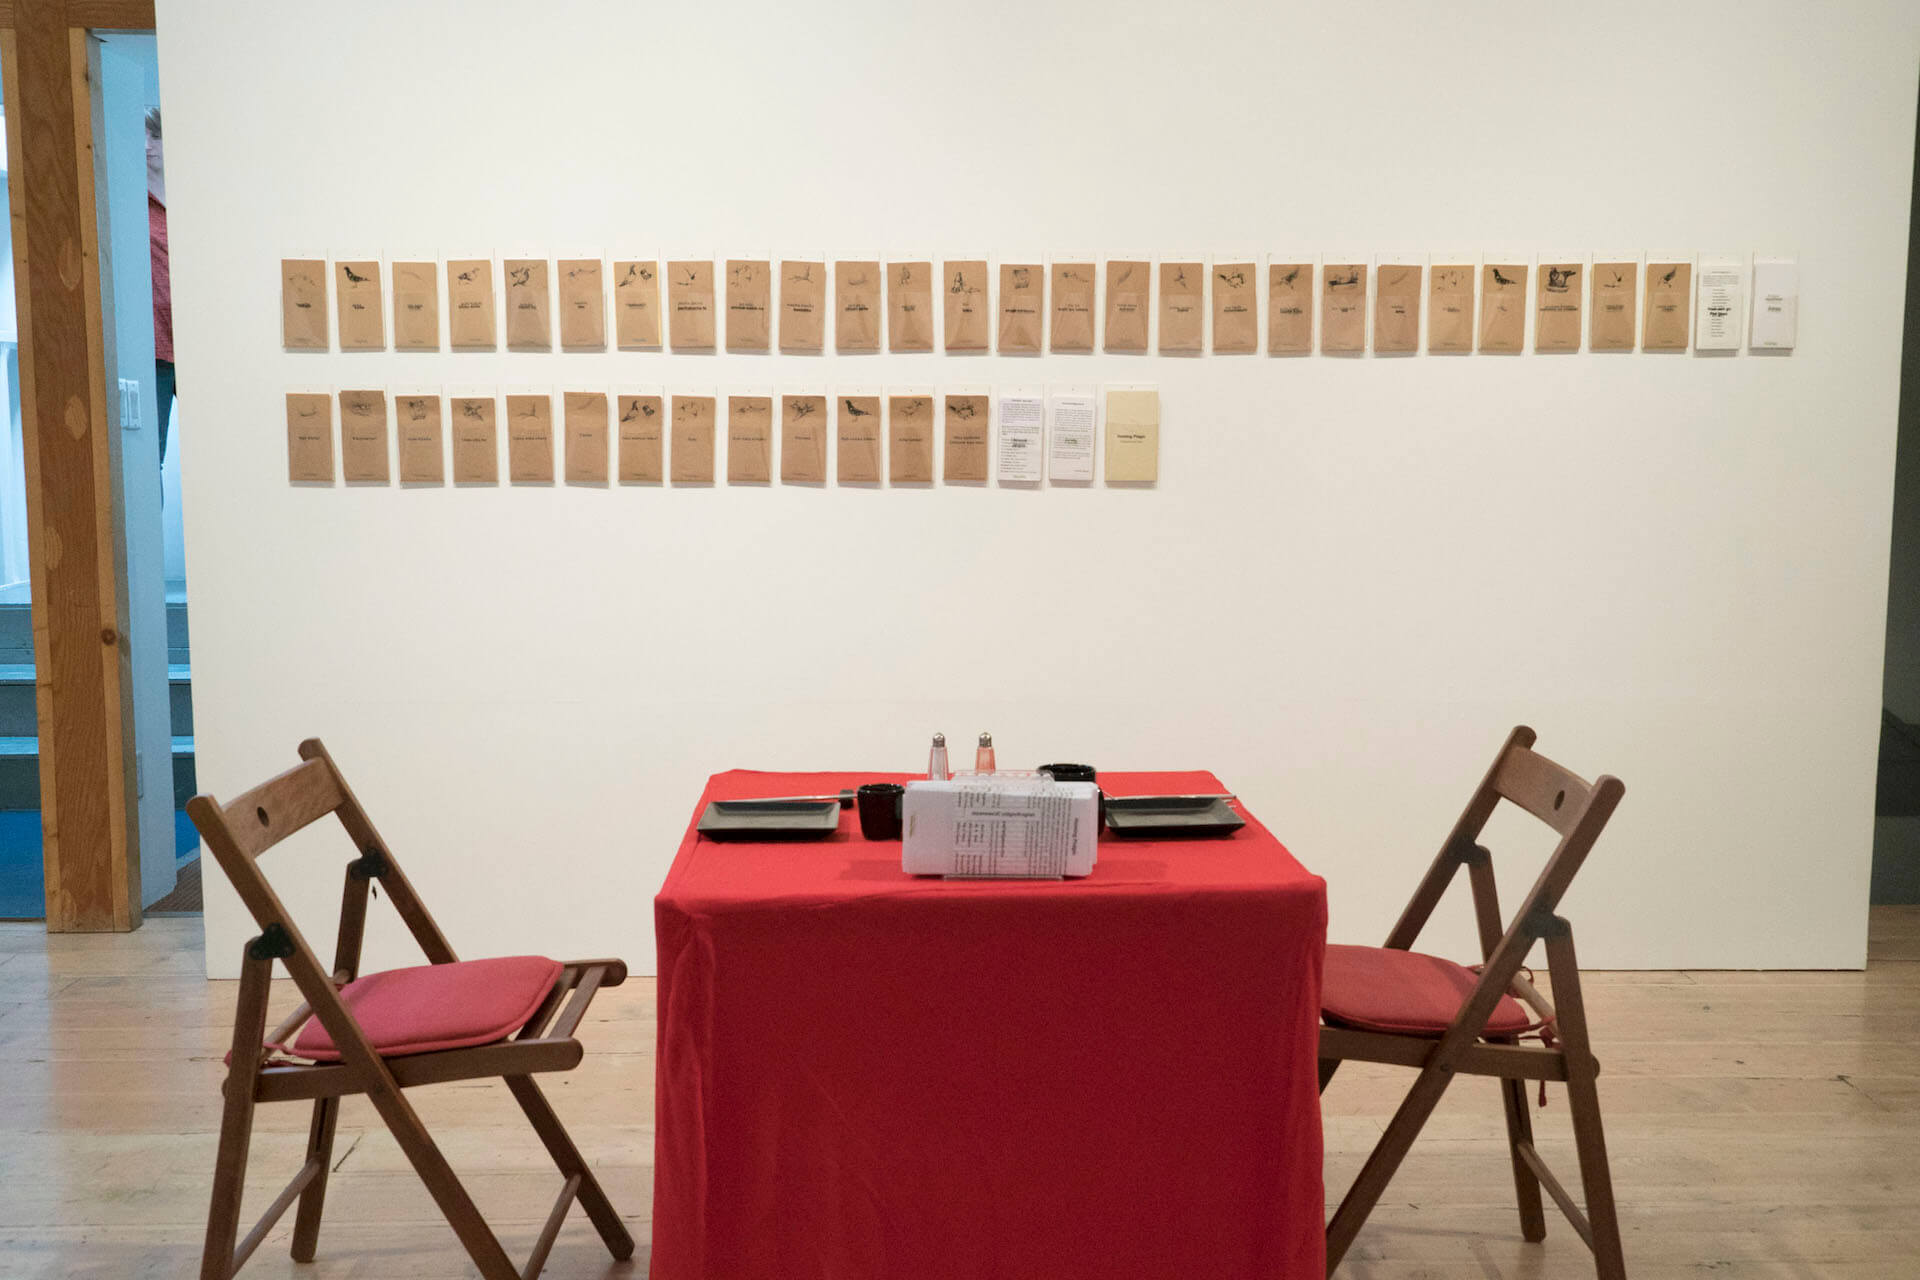 Haruko Okano. Homing Pidgin. 2006/2017. Installation view